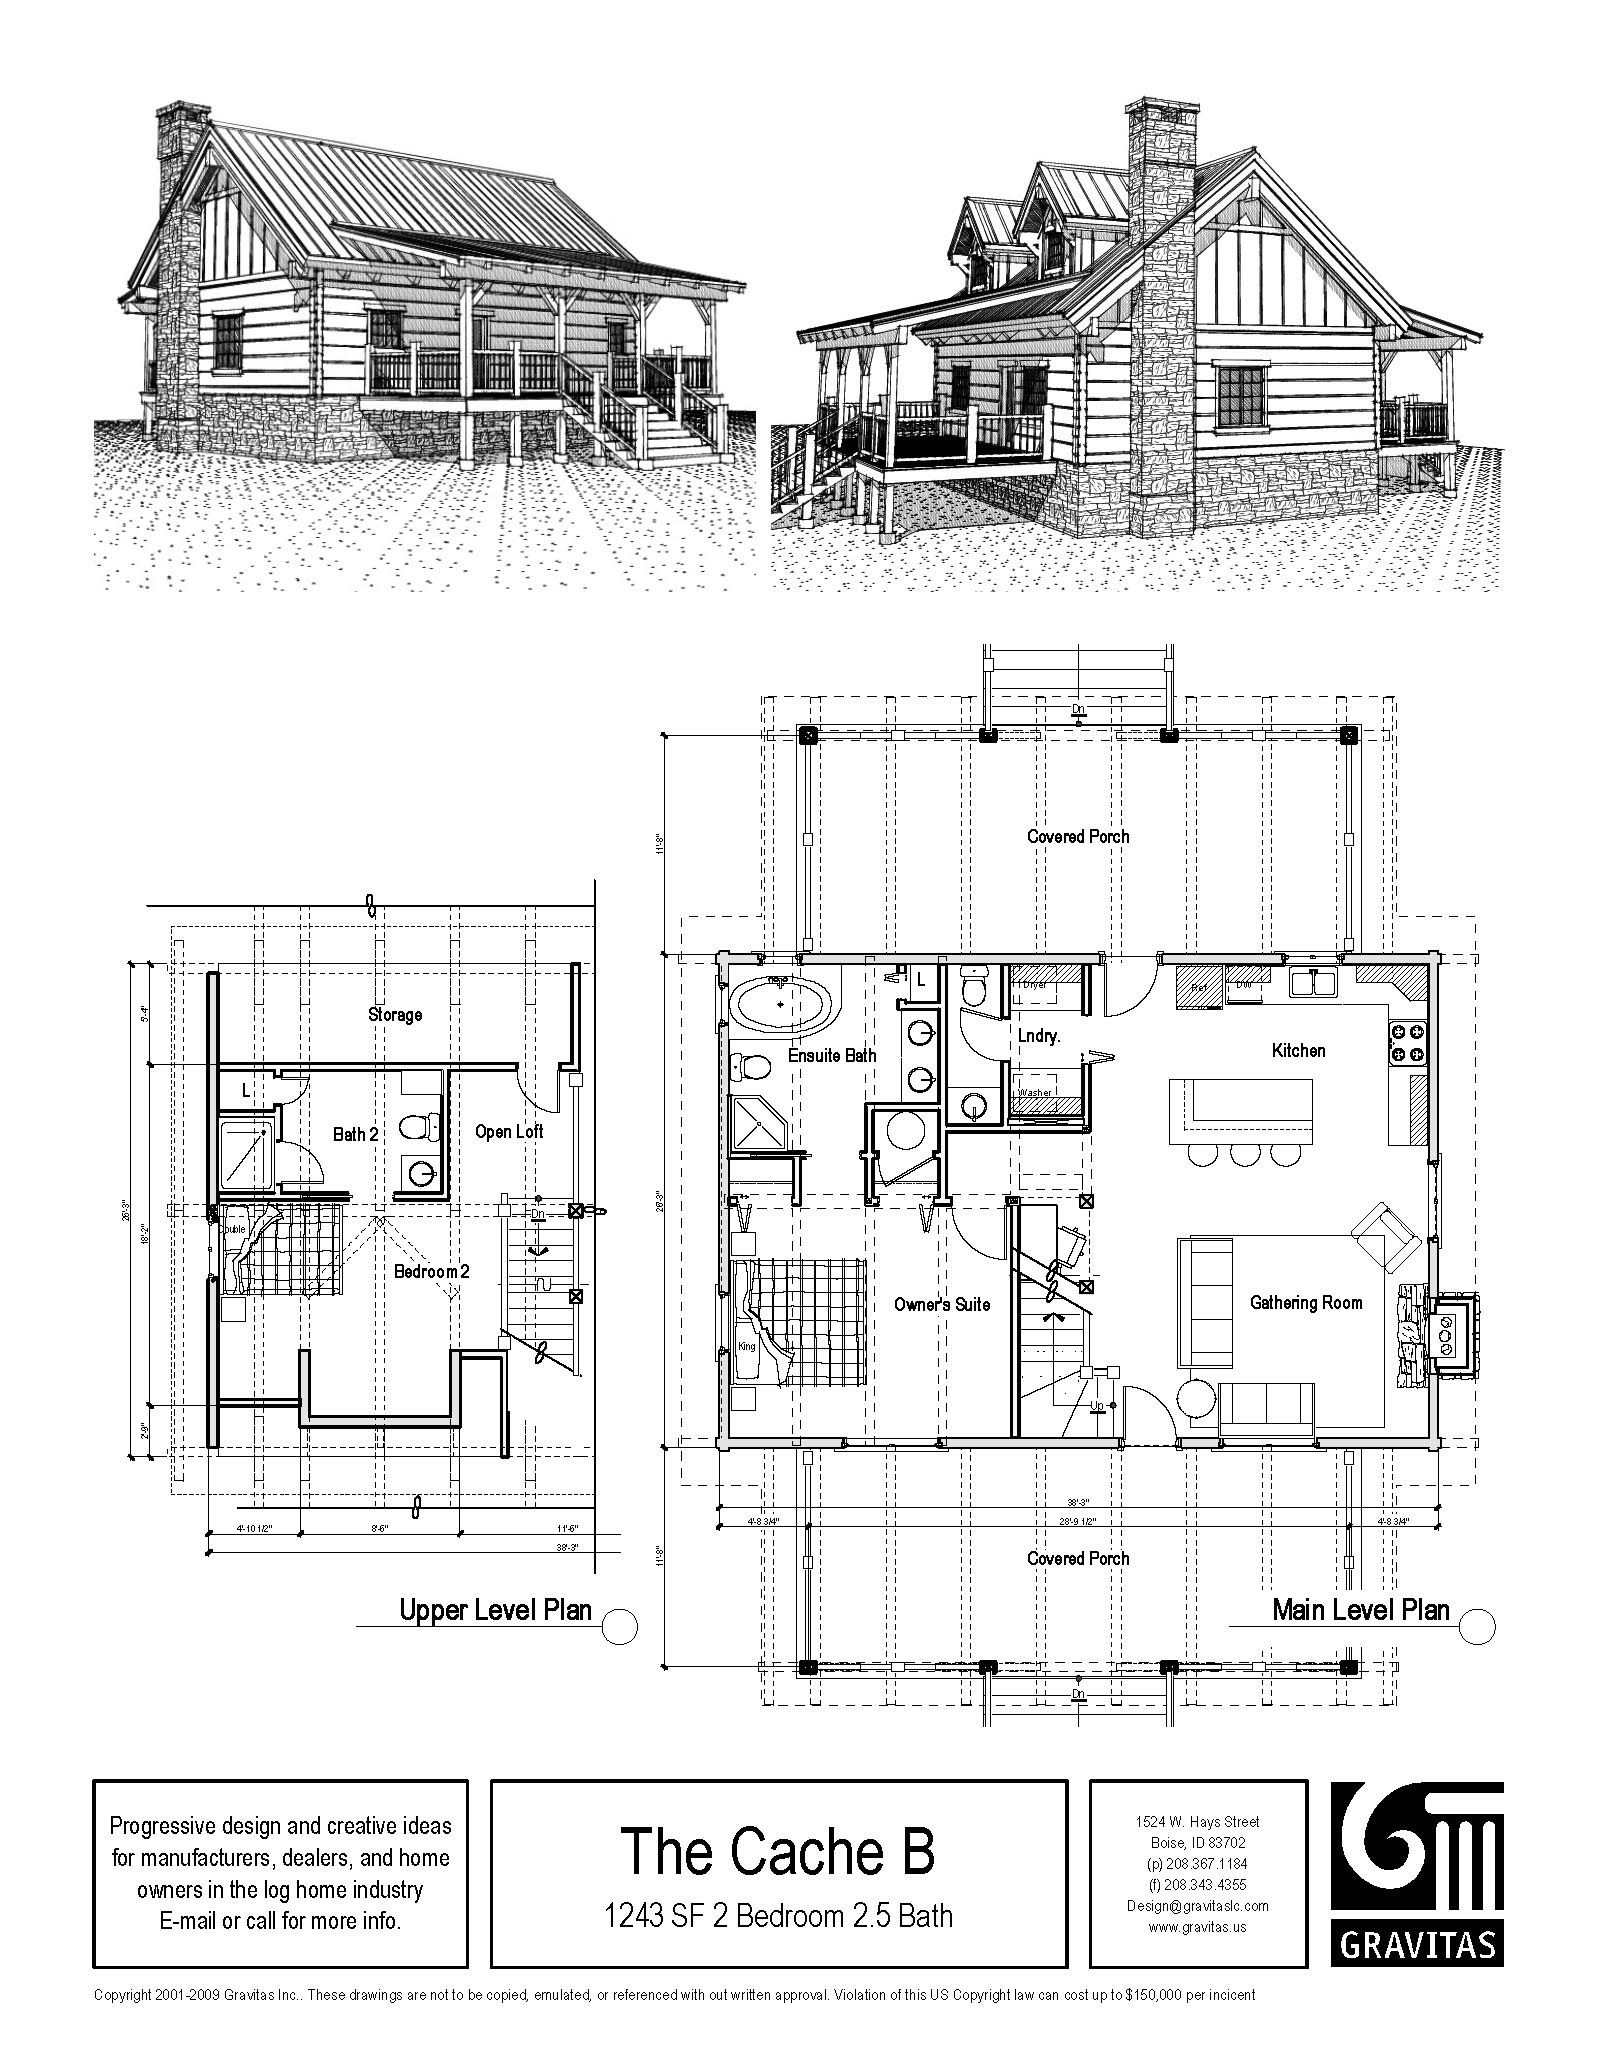 Small 3 Bedroom Log Cabin Plans Cabin Plans With Loft Small Cabin Plans Floor Plans